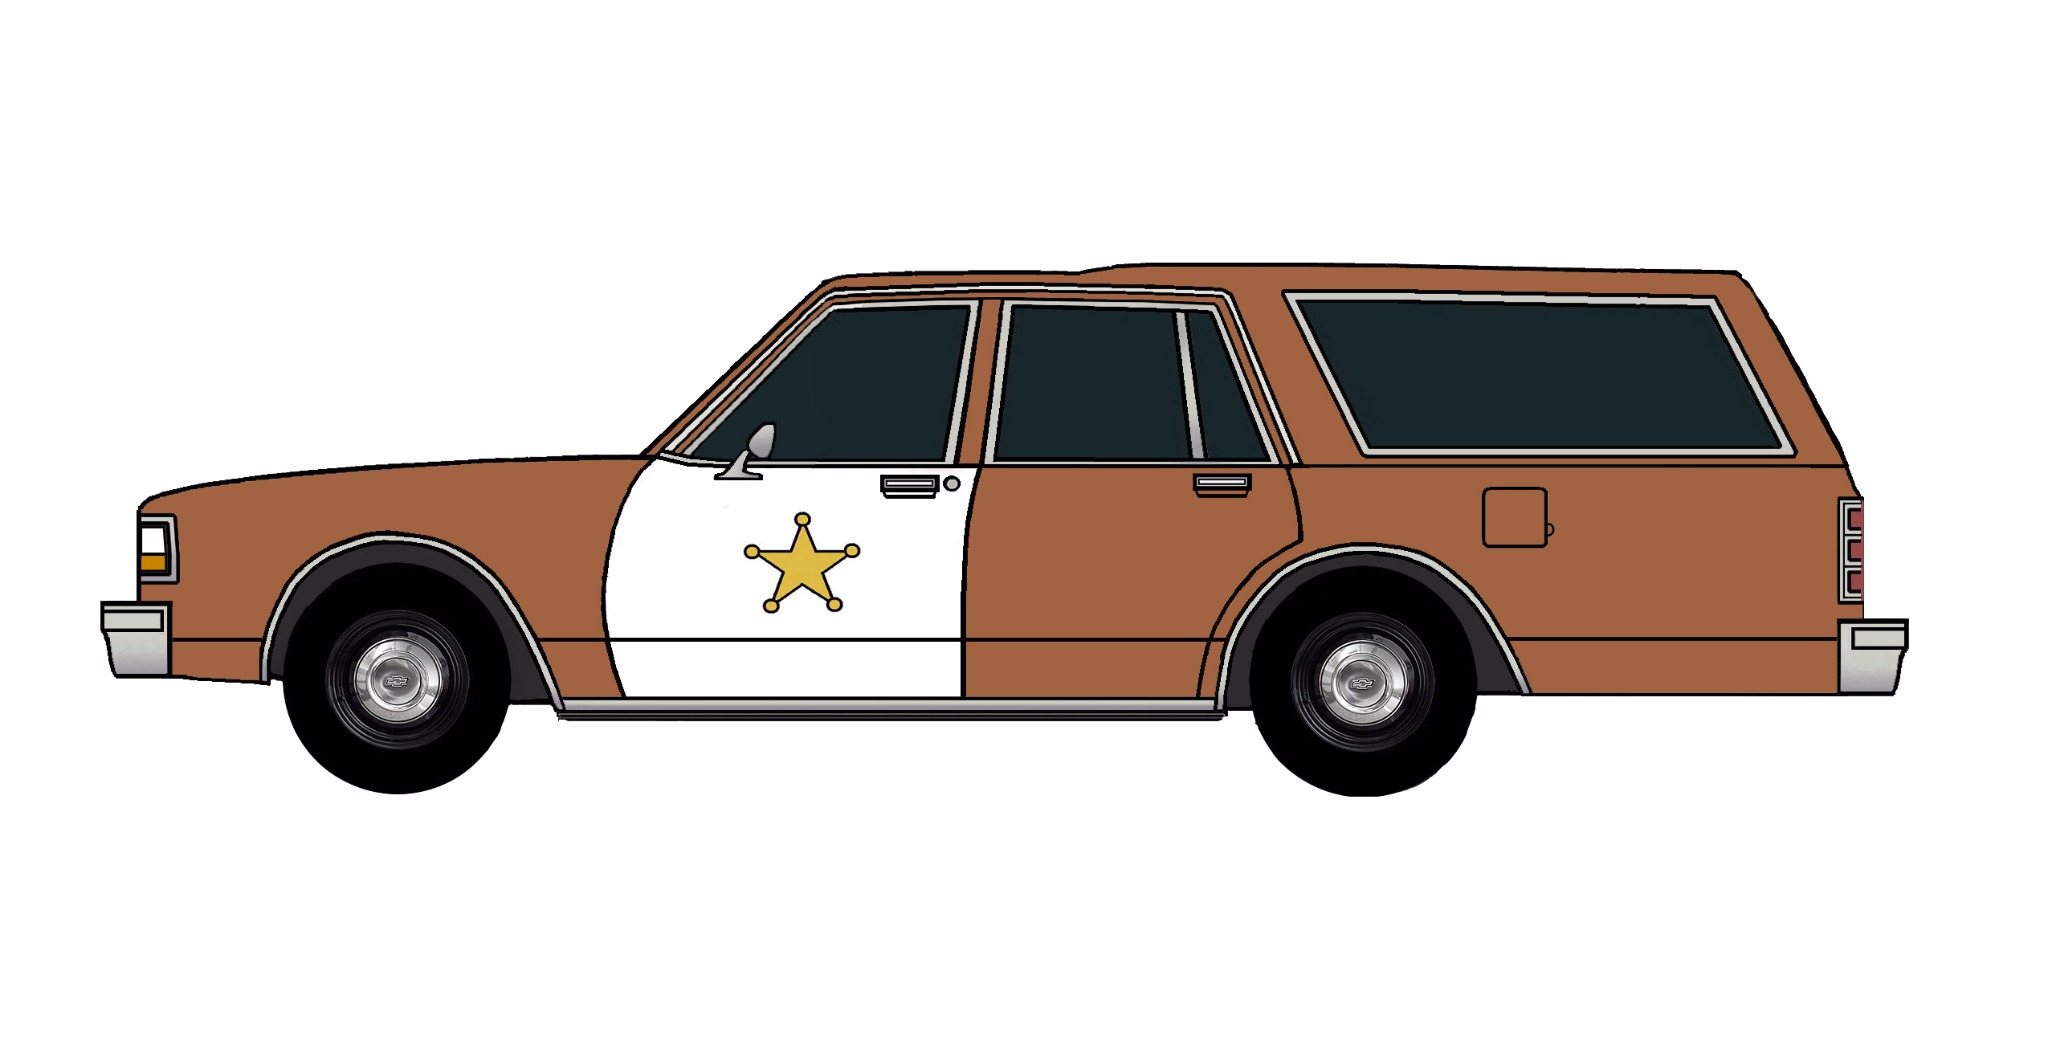 1987 Chevy Caprice 9C1 Wagon SIENNA BROWN